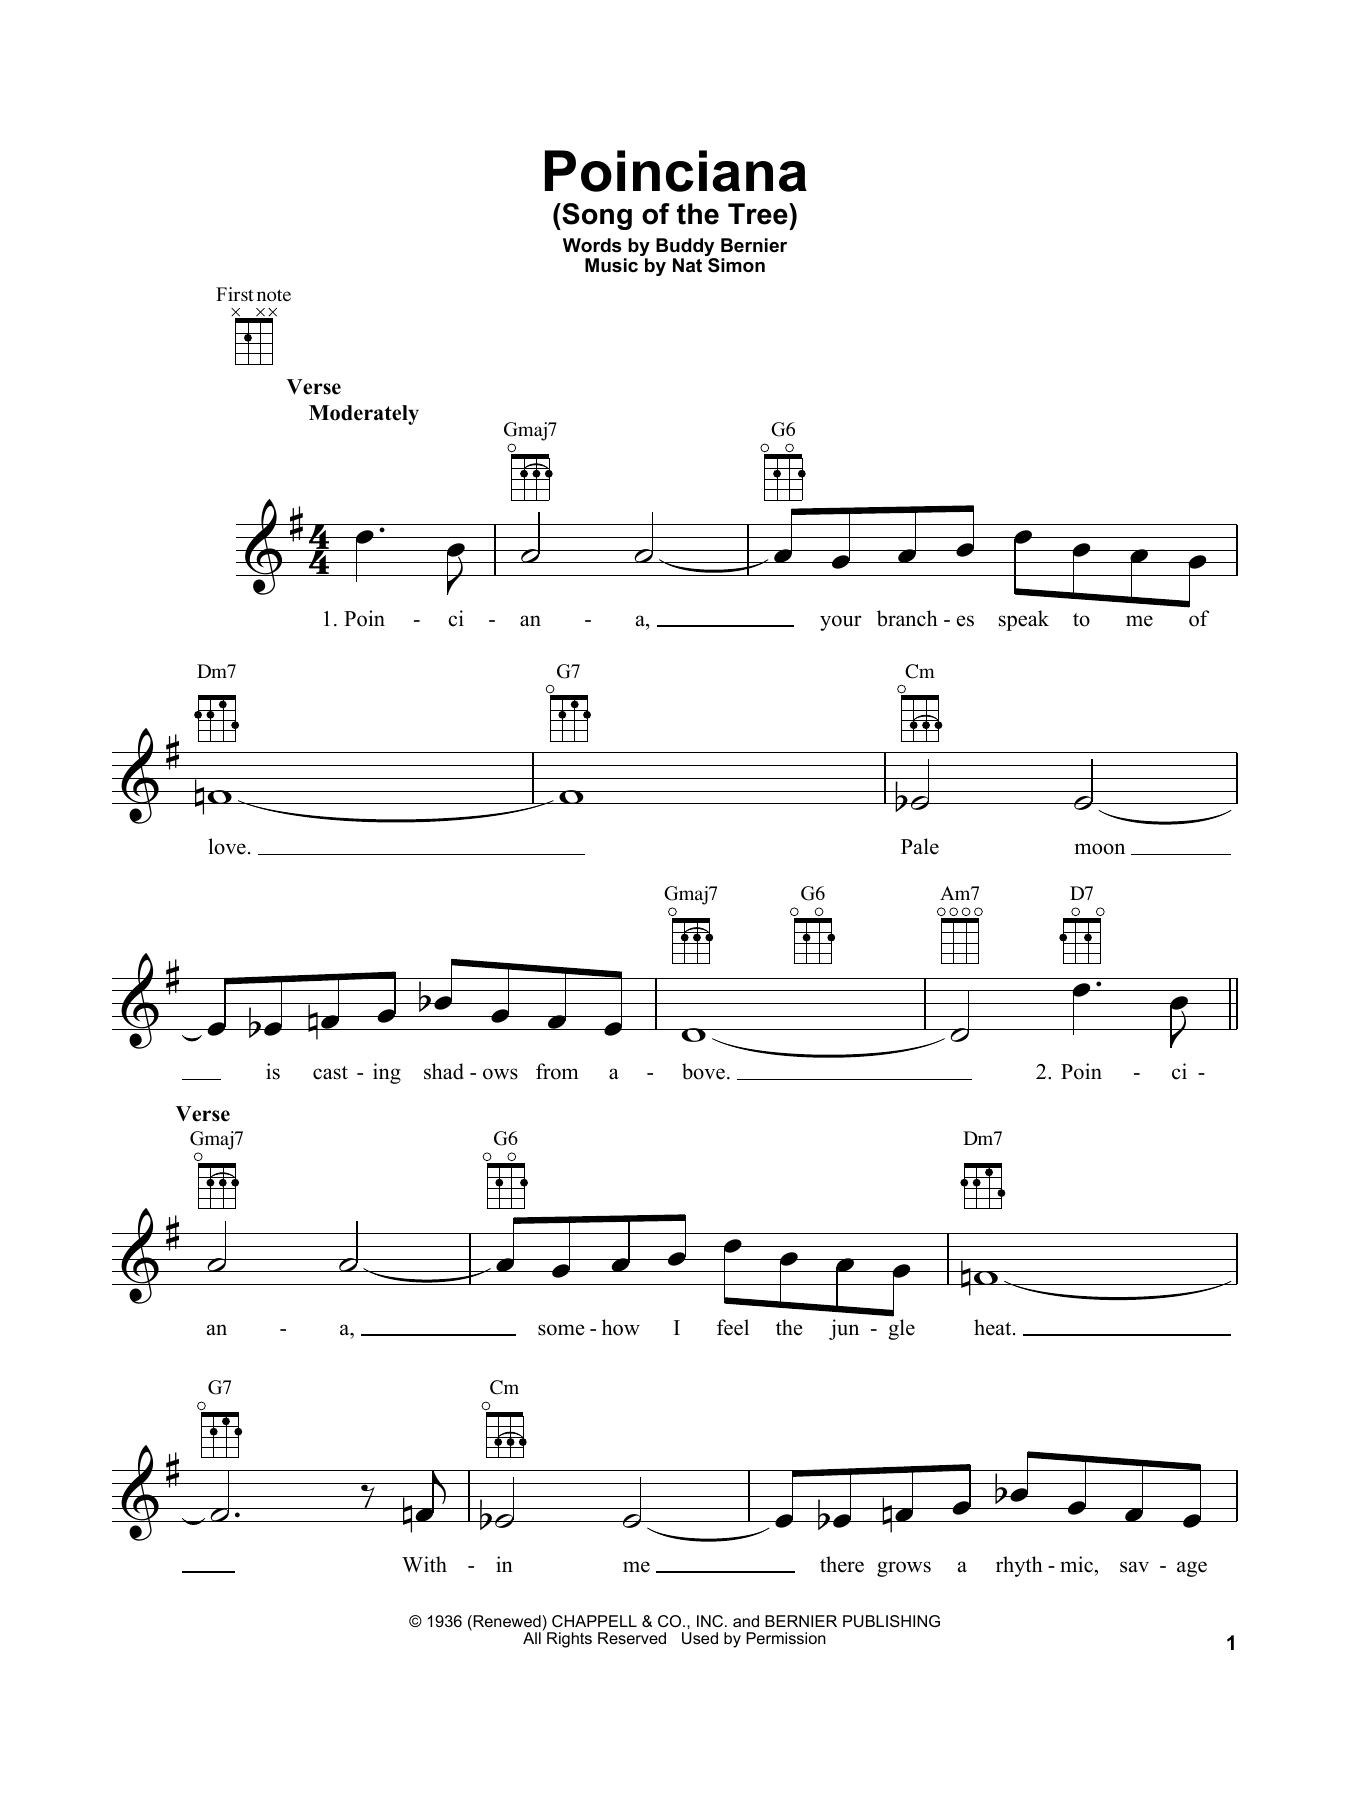 Buddy Bernier Poinciana (Song Of The Tree) sheet music notes and chords